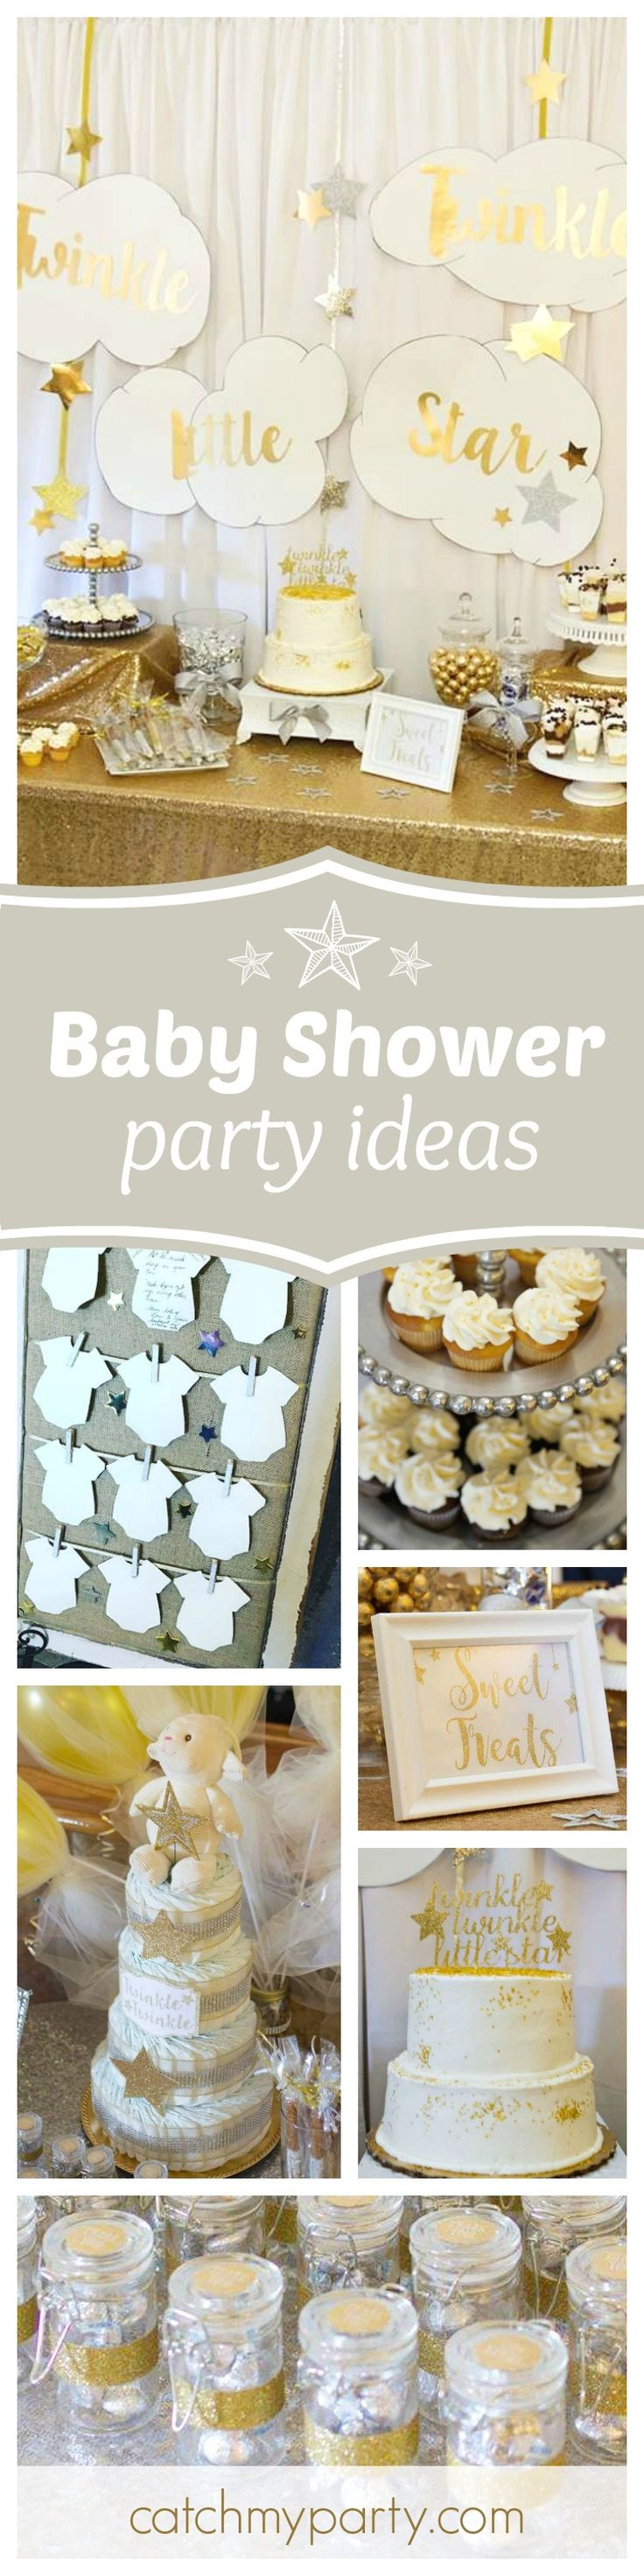 Best 25 Baby shower themes ideas on Pinterest